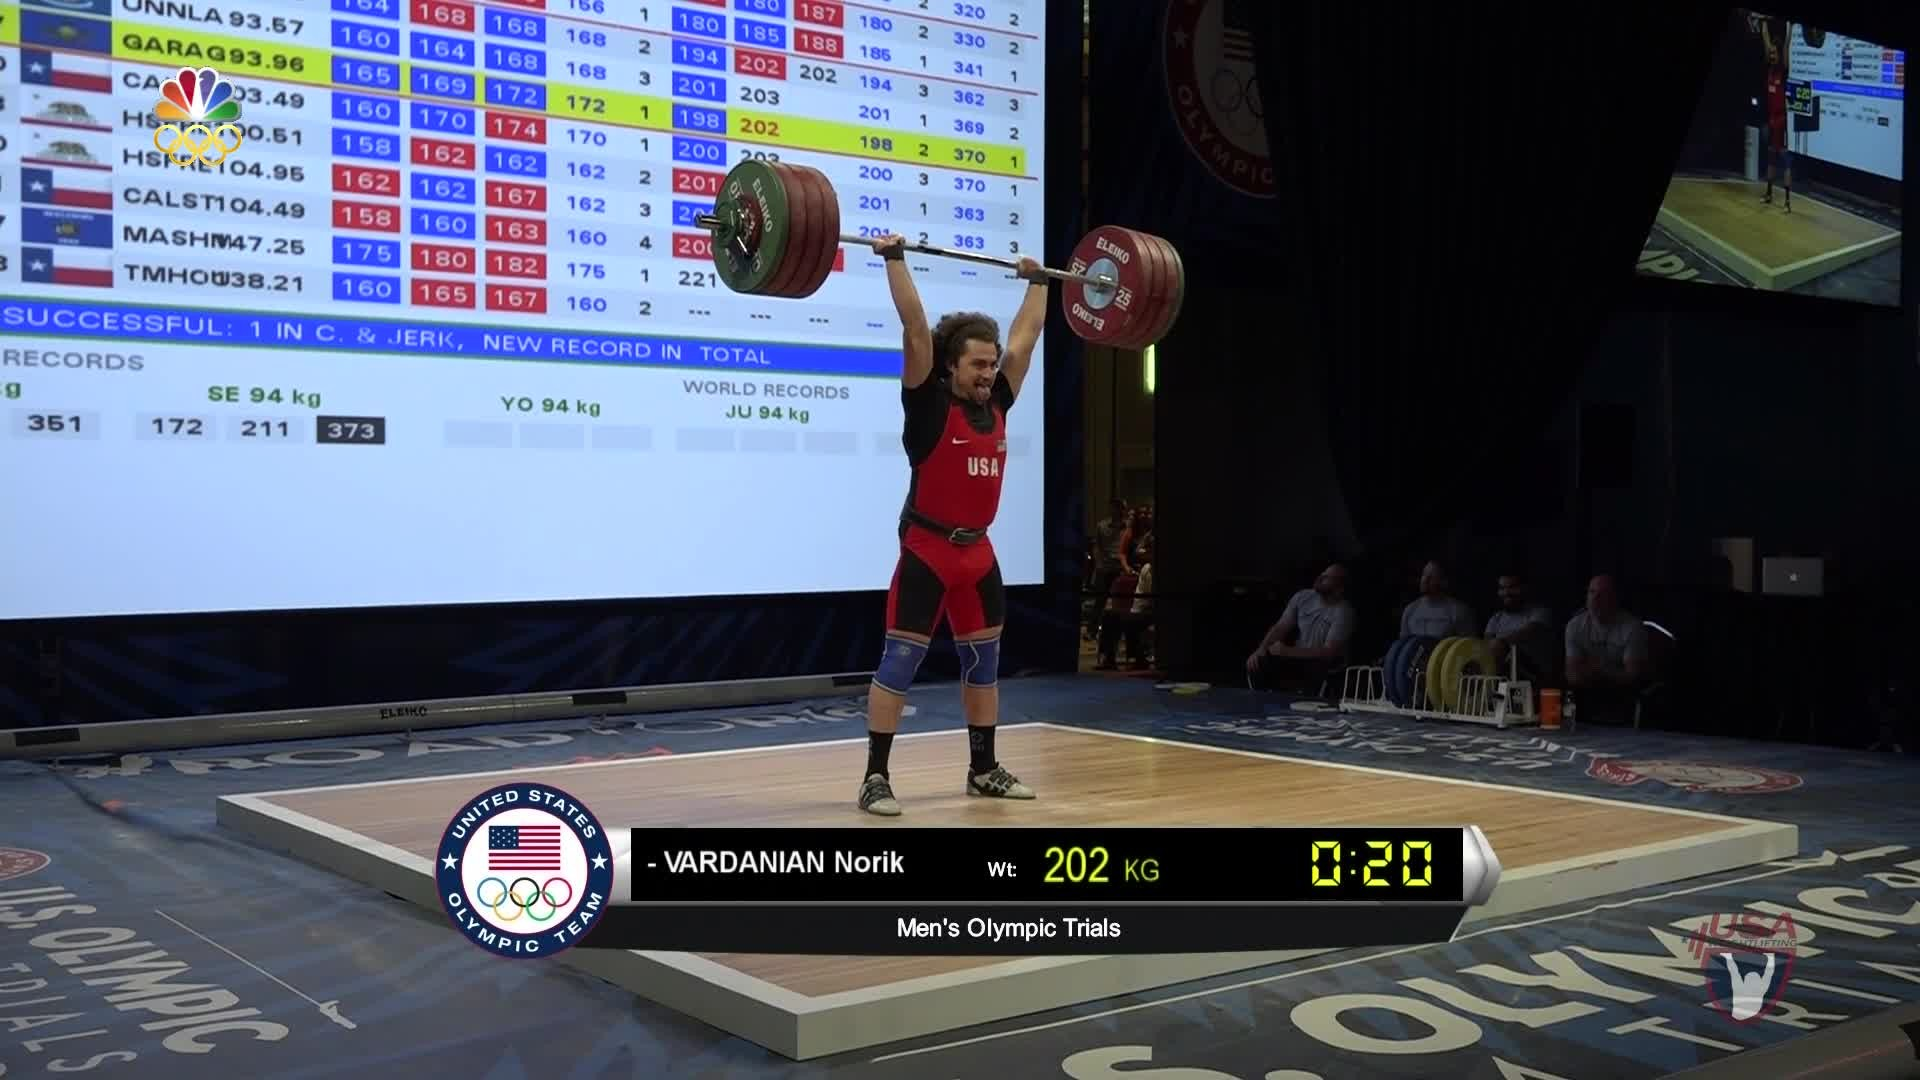 2:12 Norik Vardanian Dominates At Olympic Team Trials For Weightlifting